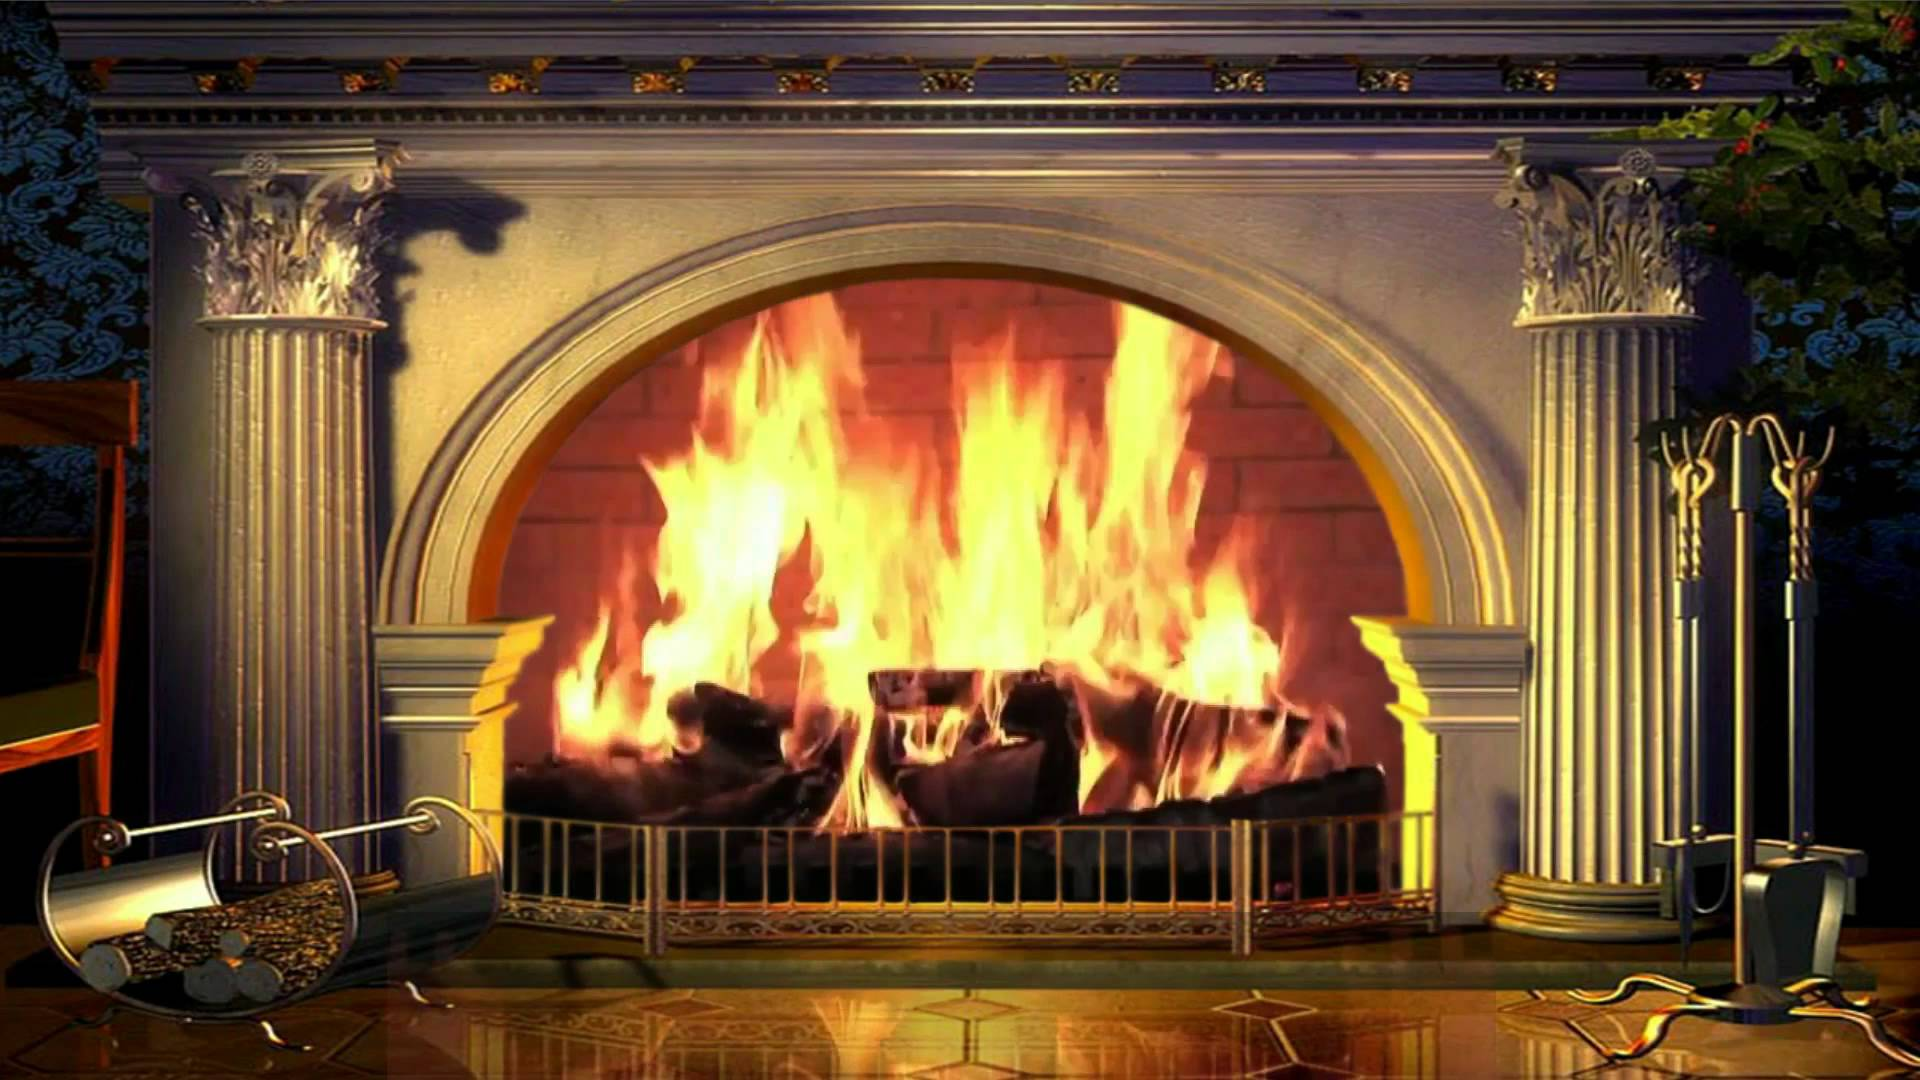 Virtual Fireplace   background video 1080p HD stock video footage 1920x1080